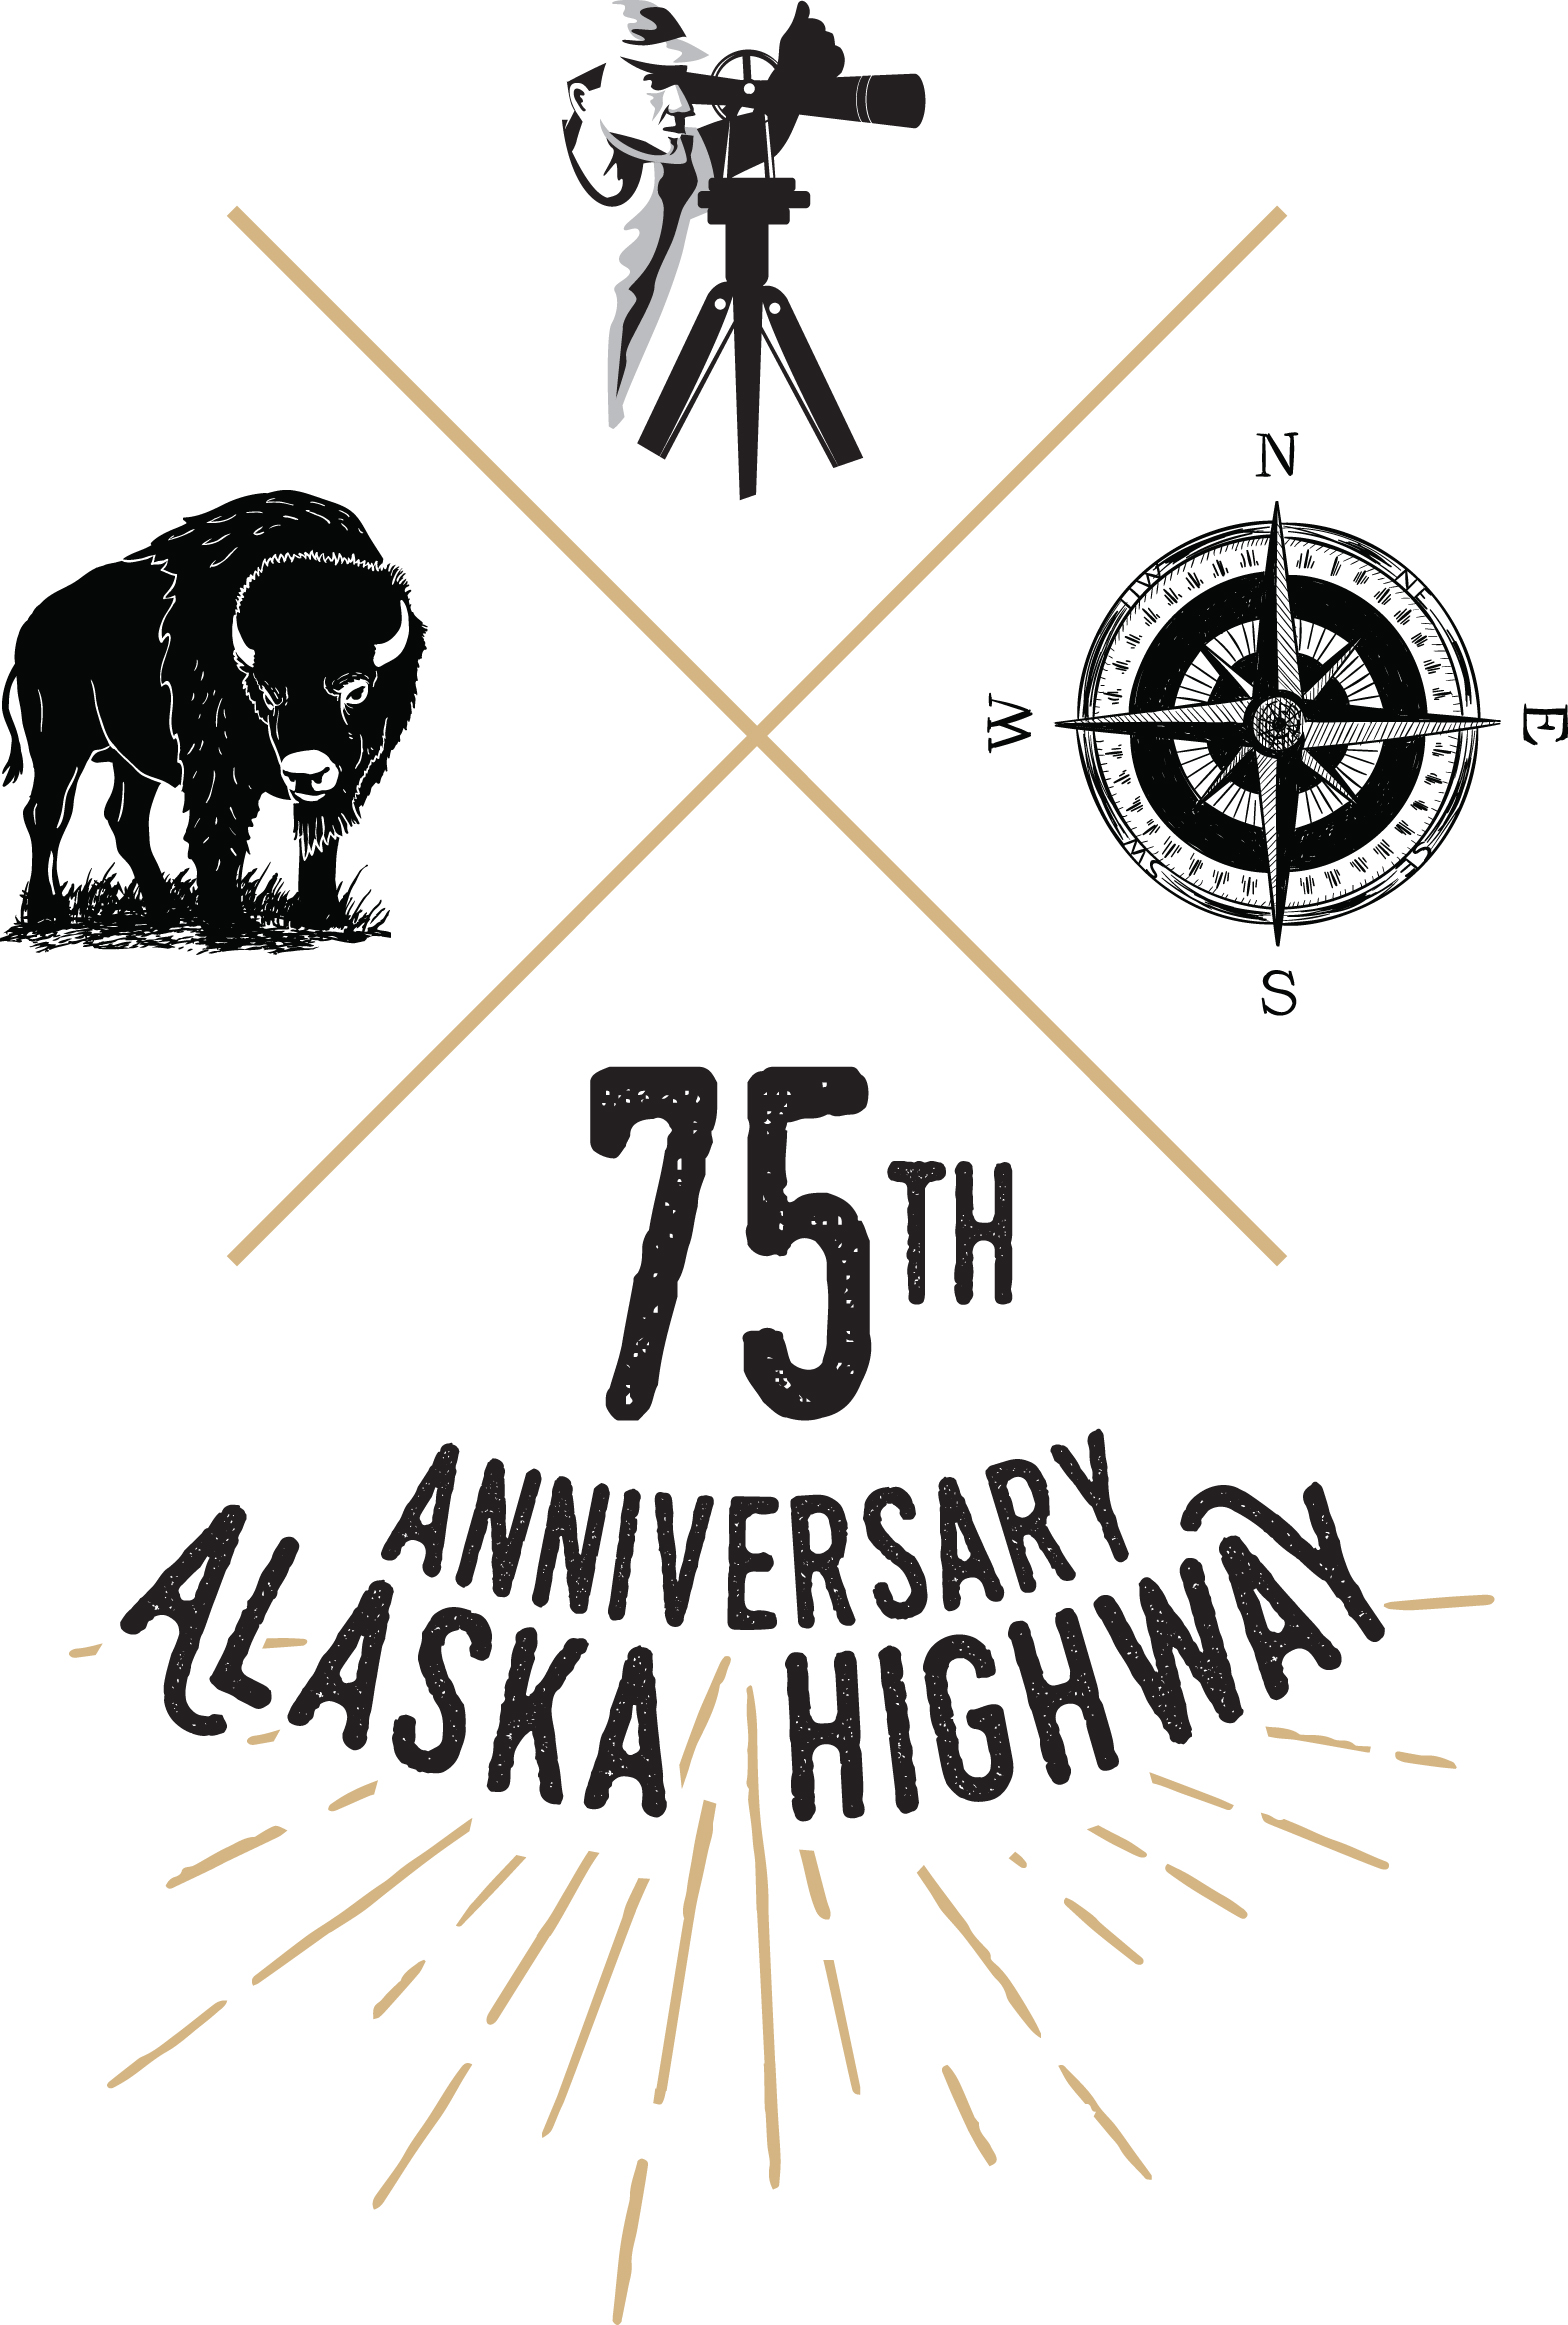 75 years on alaska highway